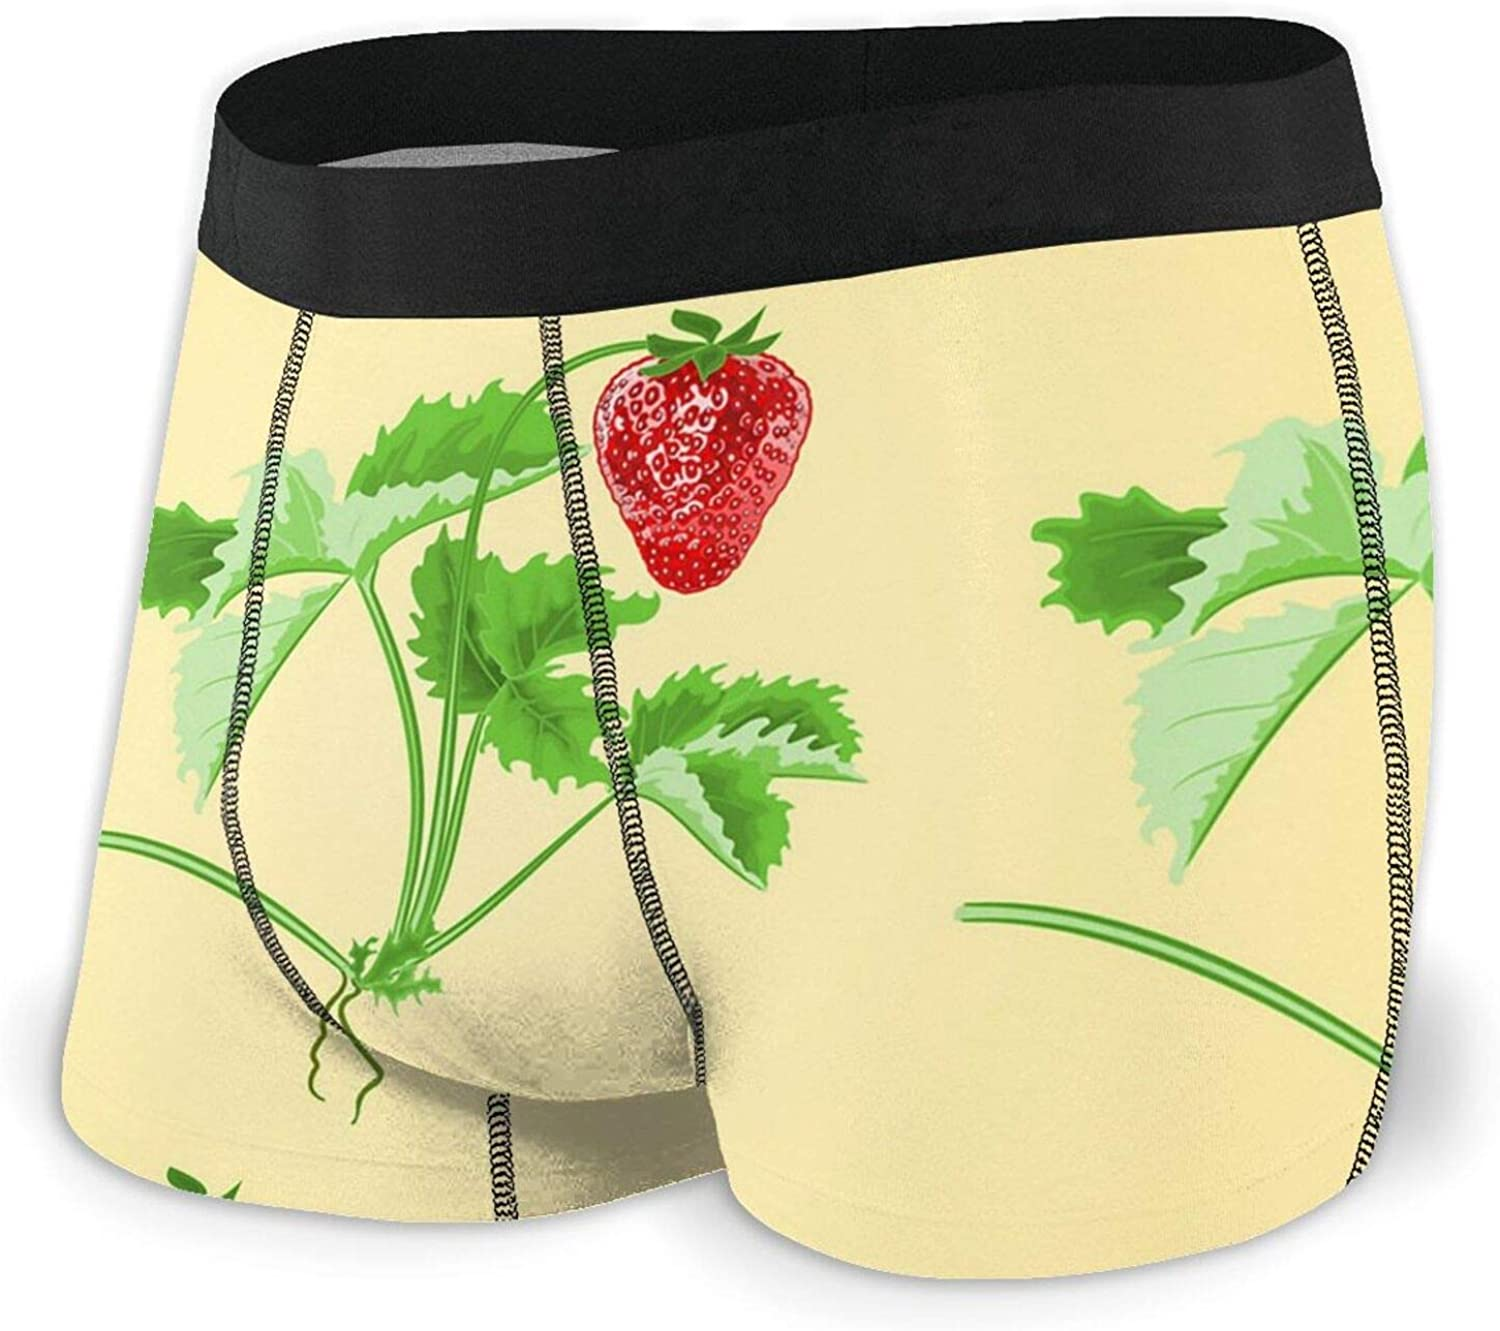 TZT Strawberries and Leaves San Francisco Mall Men's Boxer Comfor Briefs Breathable NEW